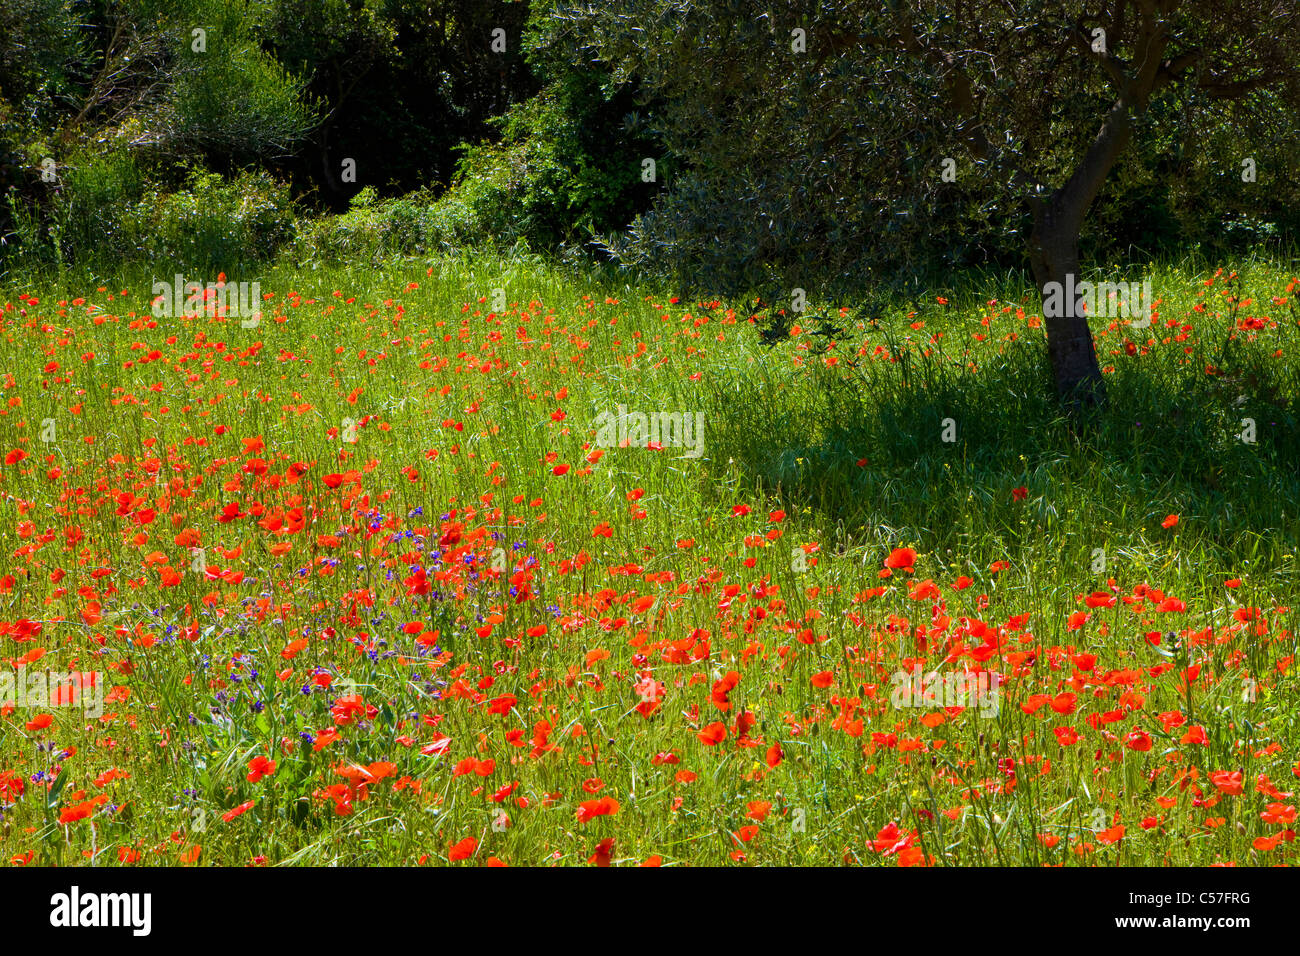 Les Alpilles, France, Europe, Provence, Bouches-du-Rhône, meadow, trees, olive trees, flowers, poppy - Stock Image